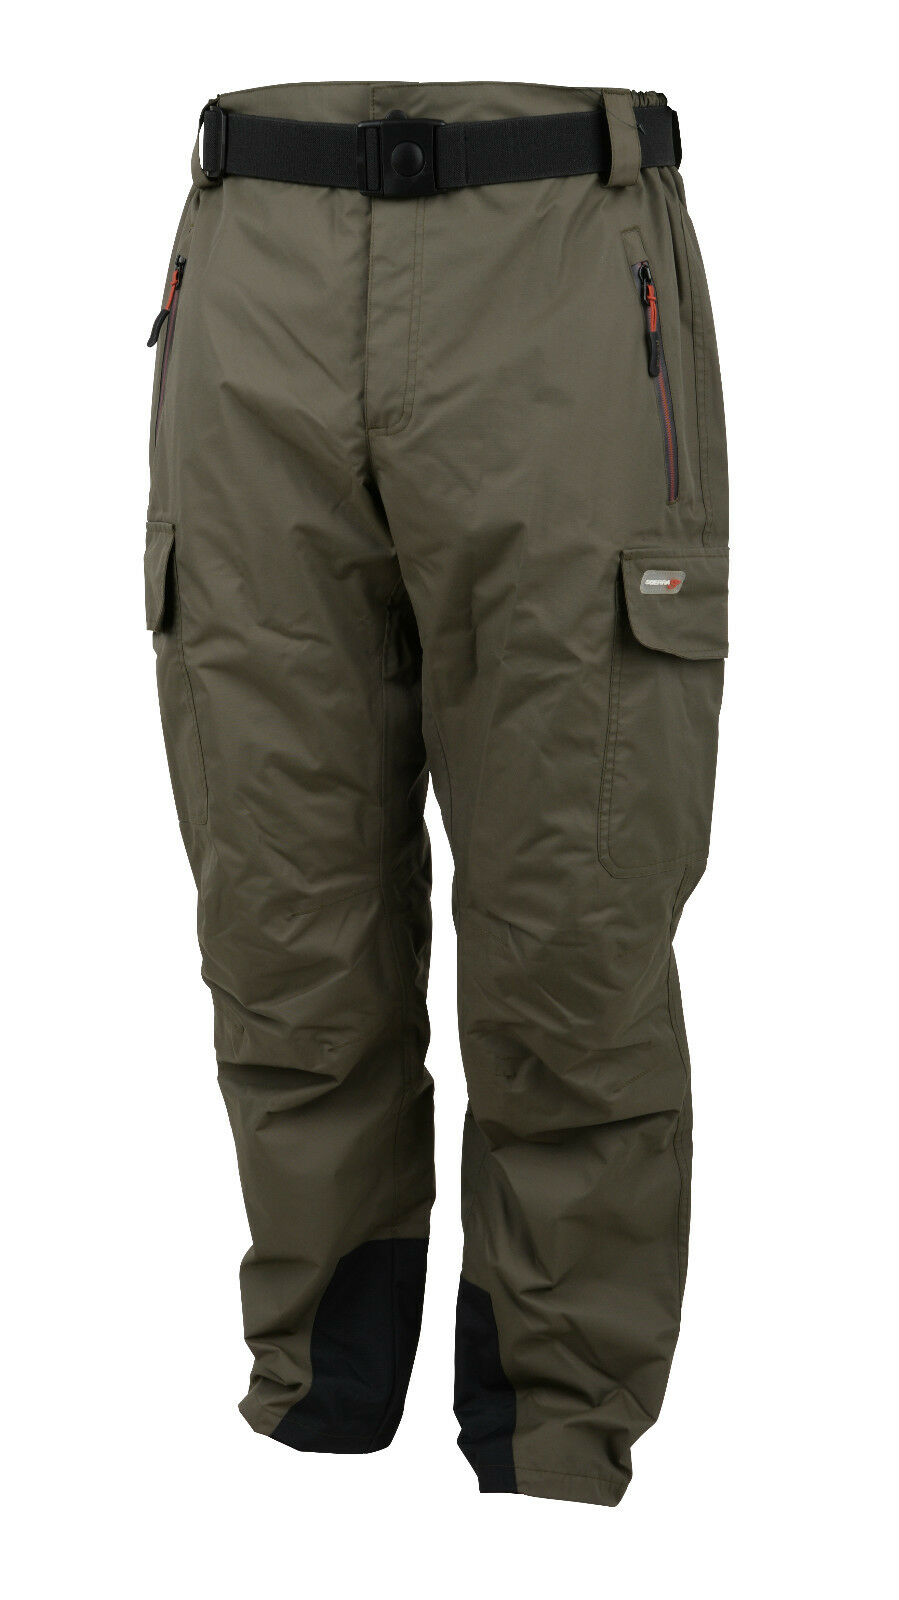 SCIERRA KENAI PRO FISHING TROUSERS FLY FISHING TROUT SALMON HIKING WALKING CARP